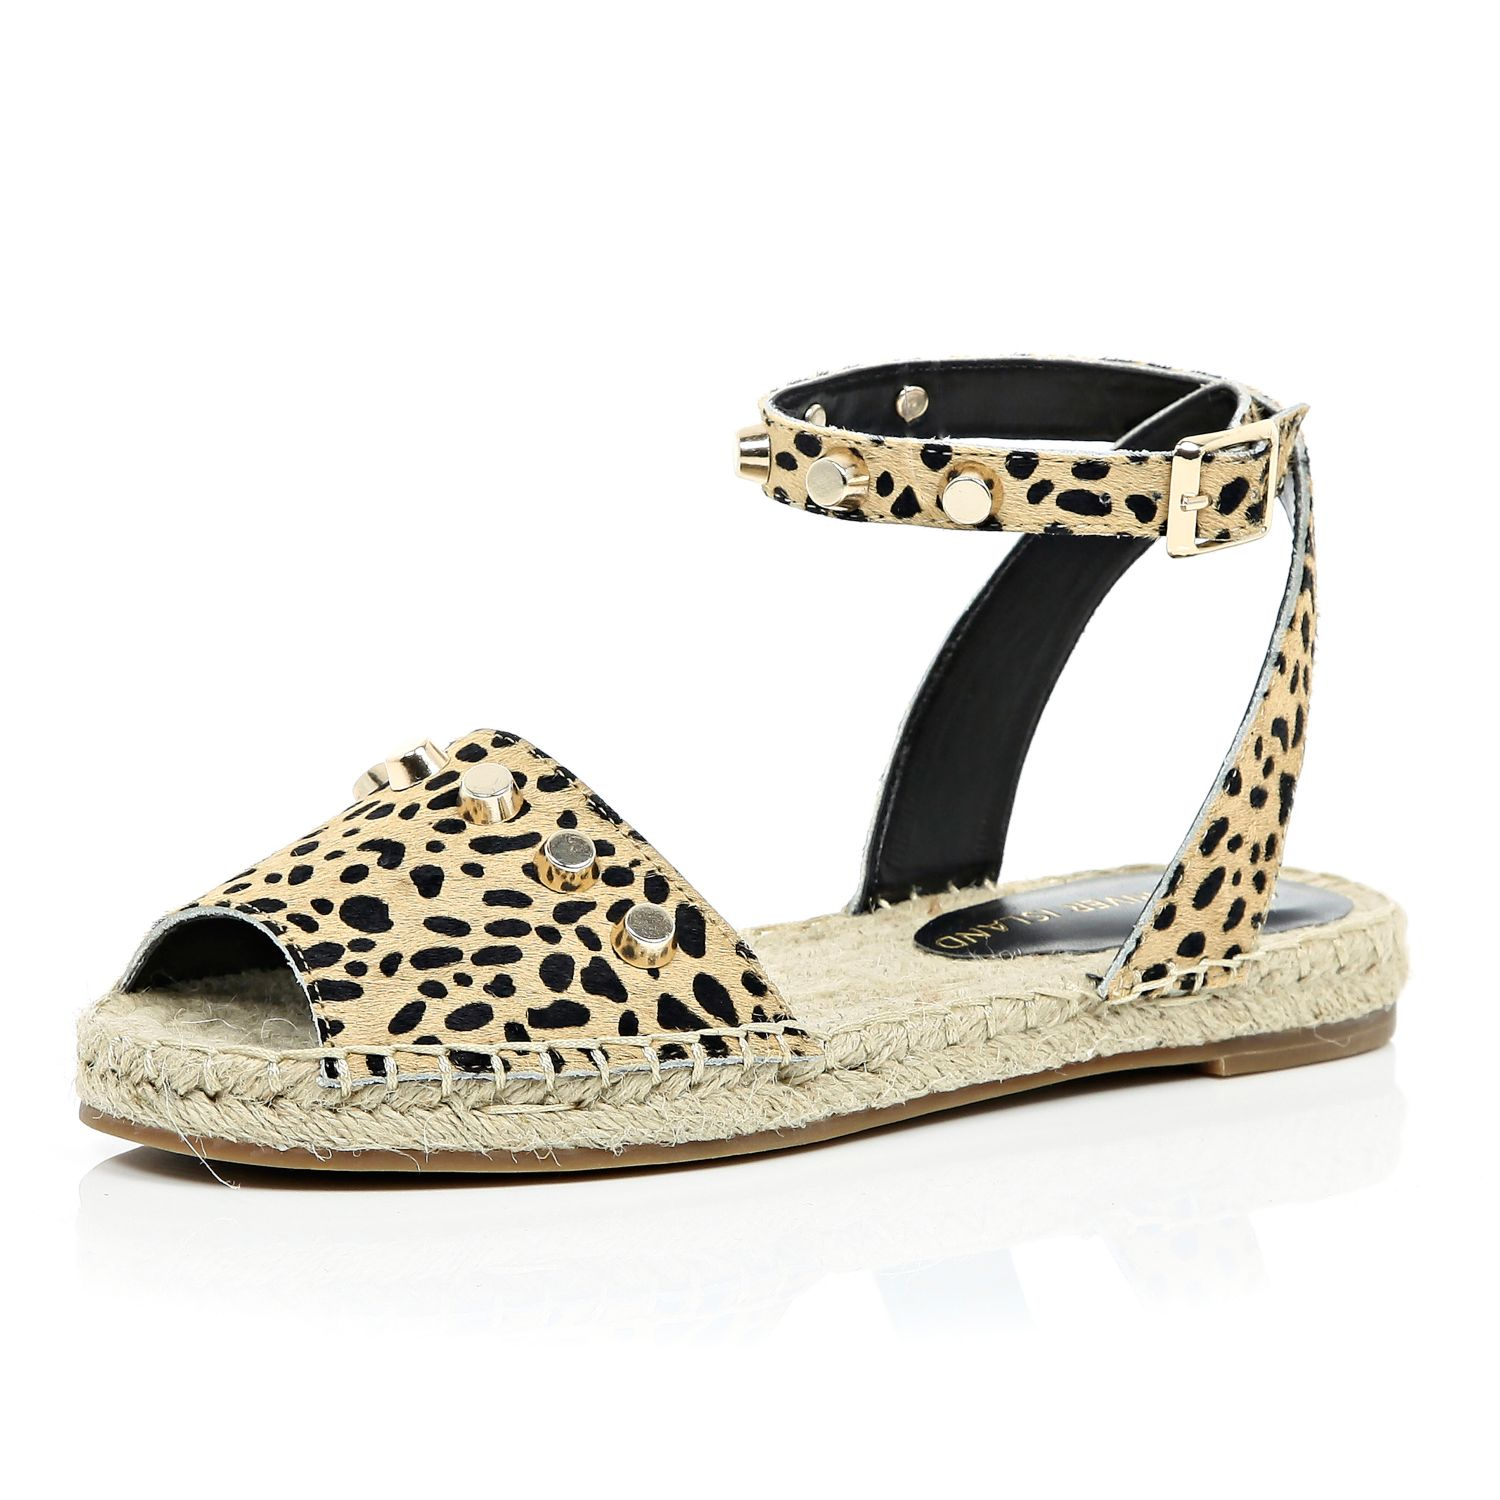 03576984ac298f River Island Leopard Leather Ponyskin Espadrille Sandals - Lyst